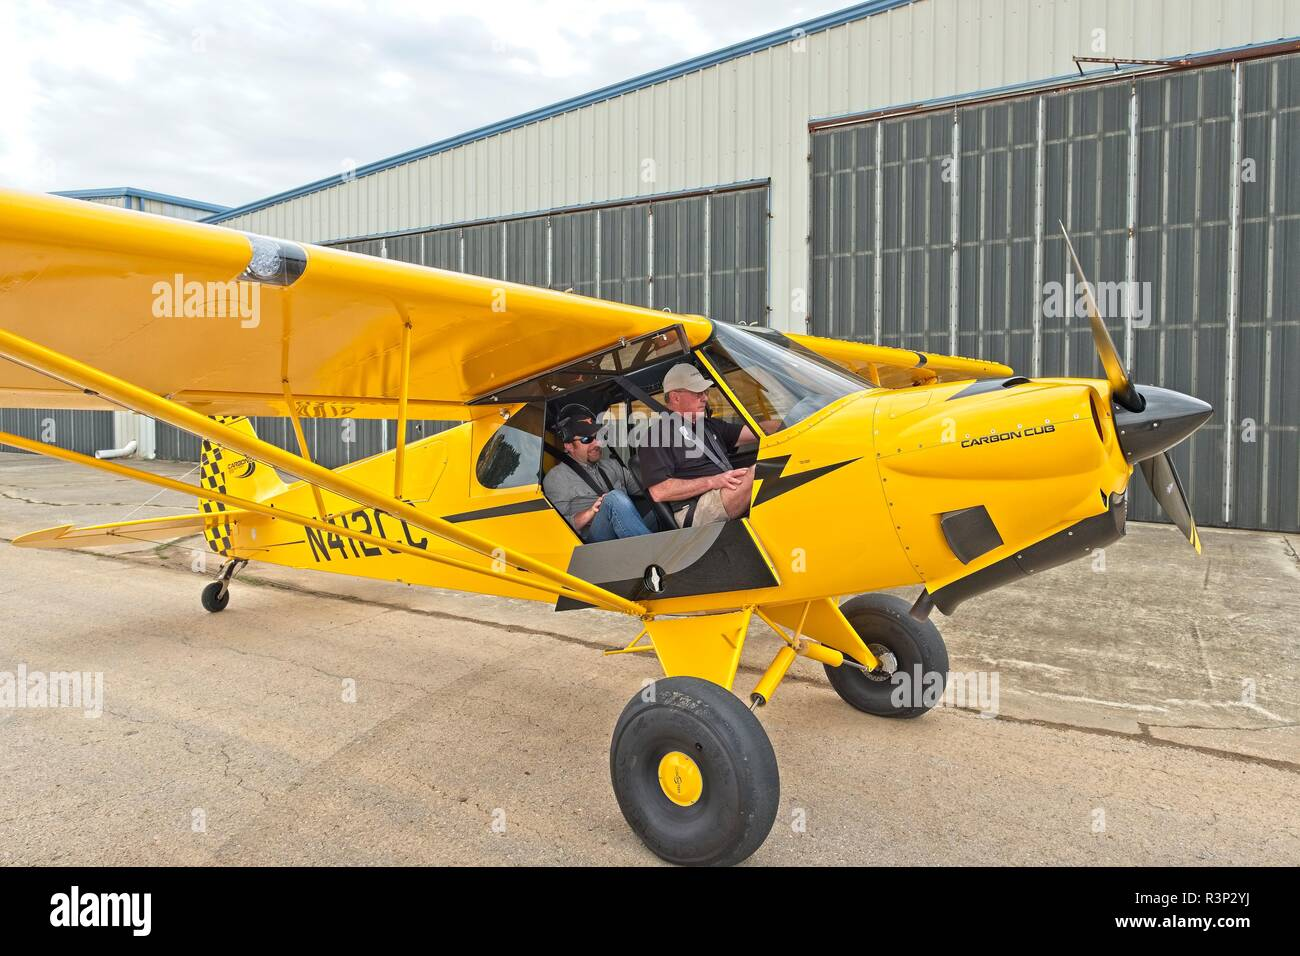 Carbon Cub SS bush plane or light sport aircraft (LSA) an experimental two seat private airplane at the Bessemer Airport, Bessemer Alabama, USA. - Stock Image